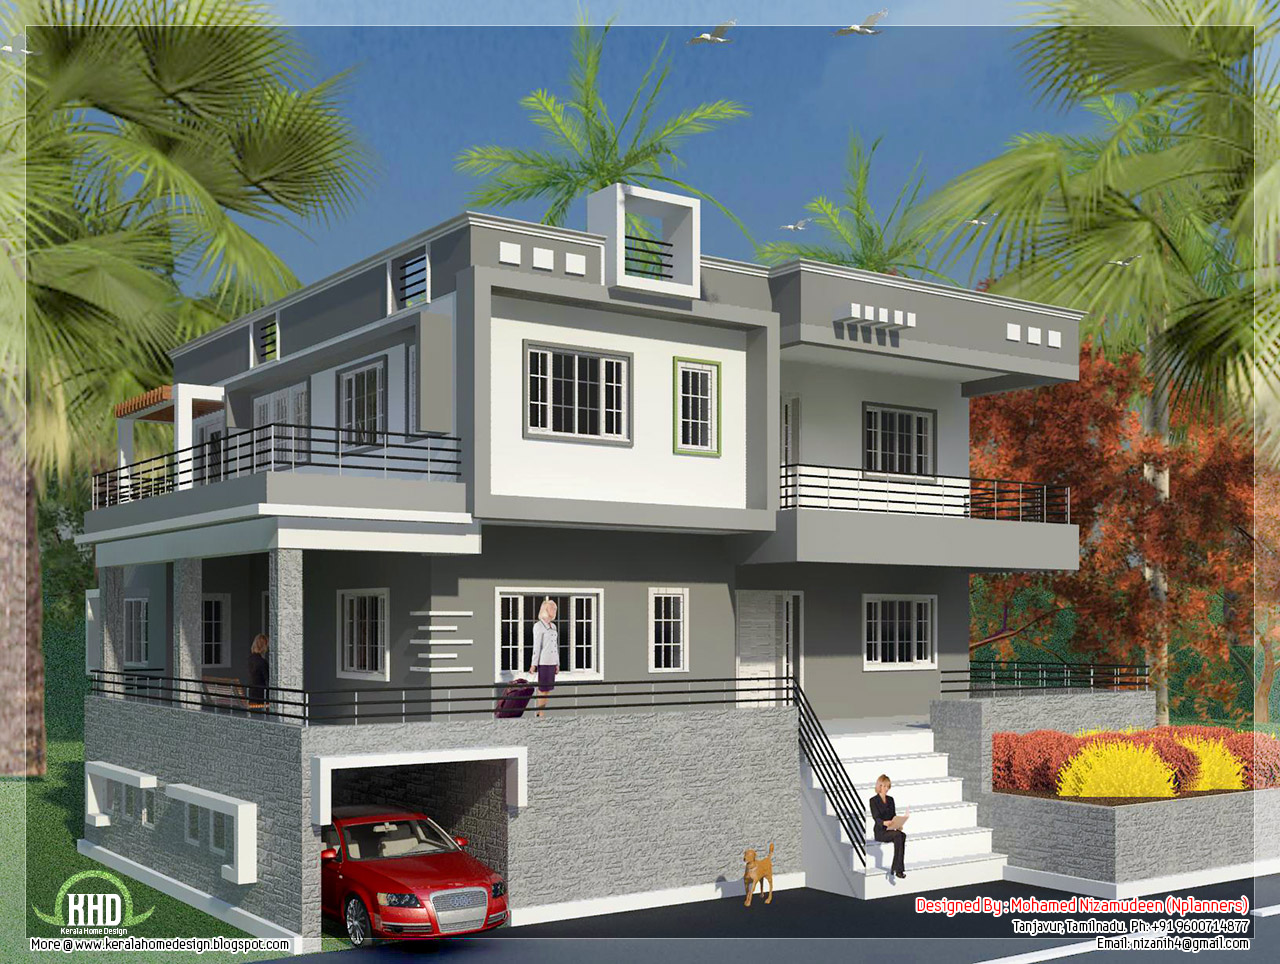 North indian style minimalist house exterior design for Home exterior design india